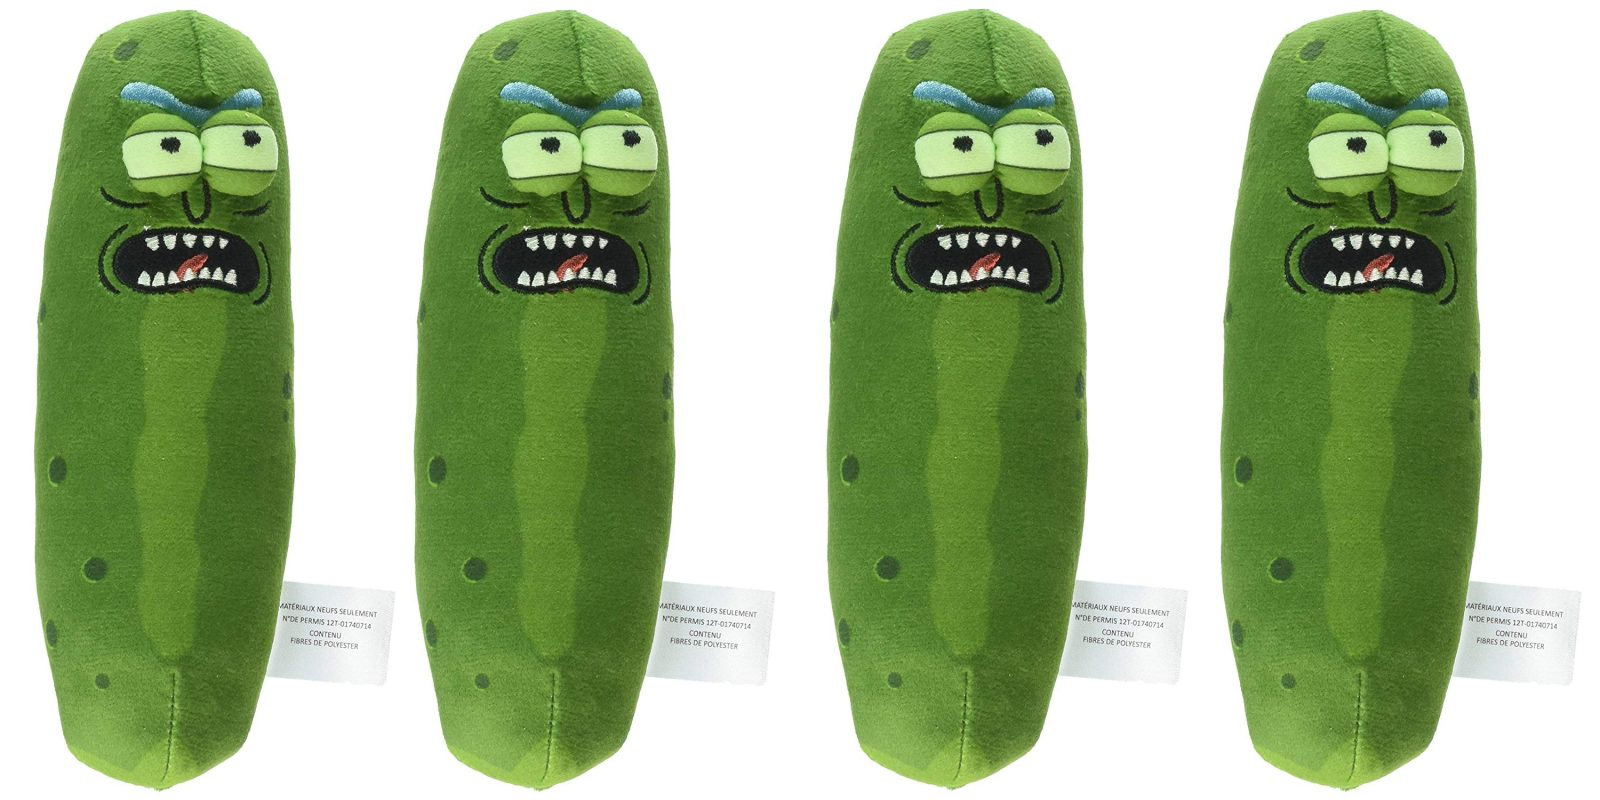 Bring home your very own Annoyed Pickle Rick at only $7 Prime shipped